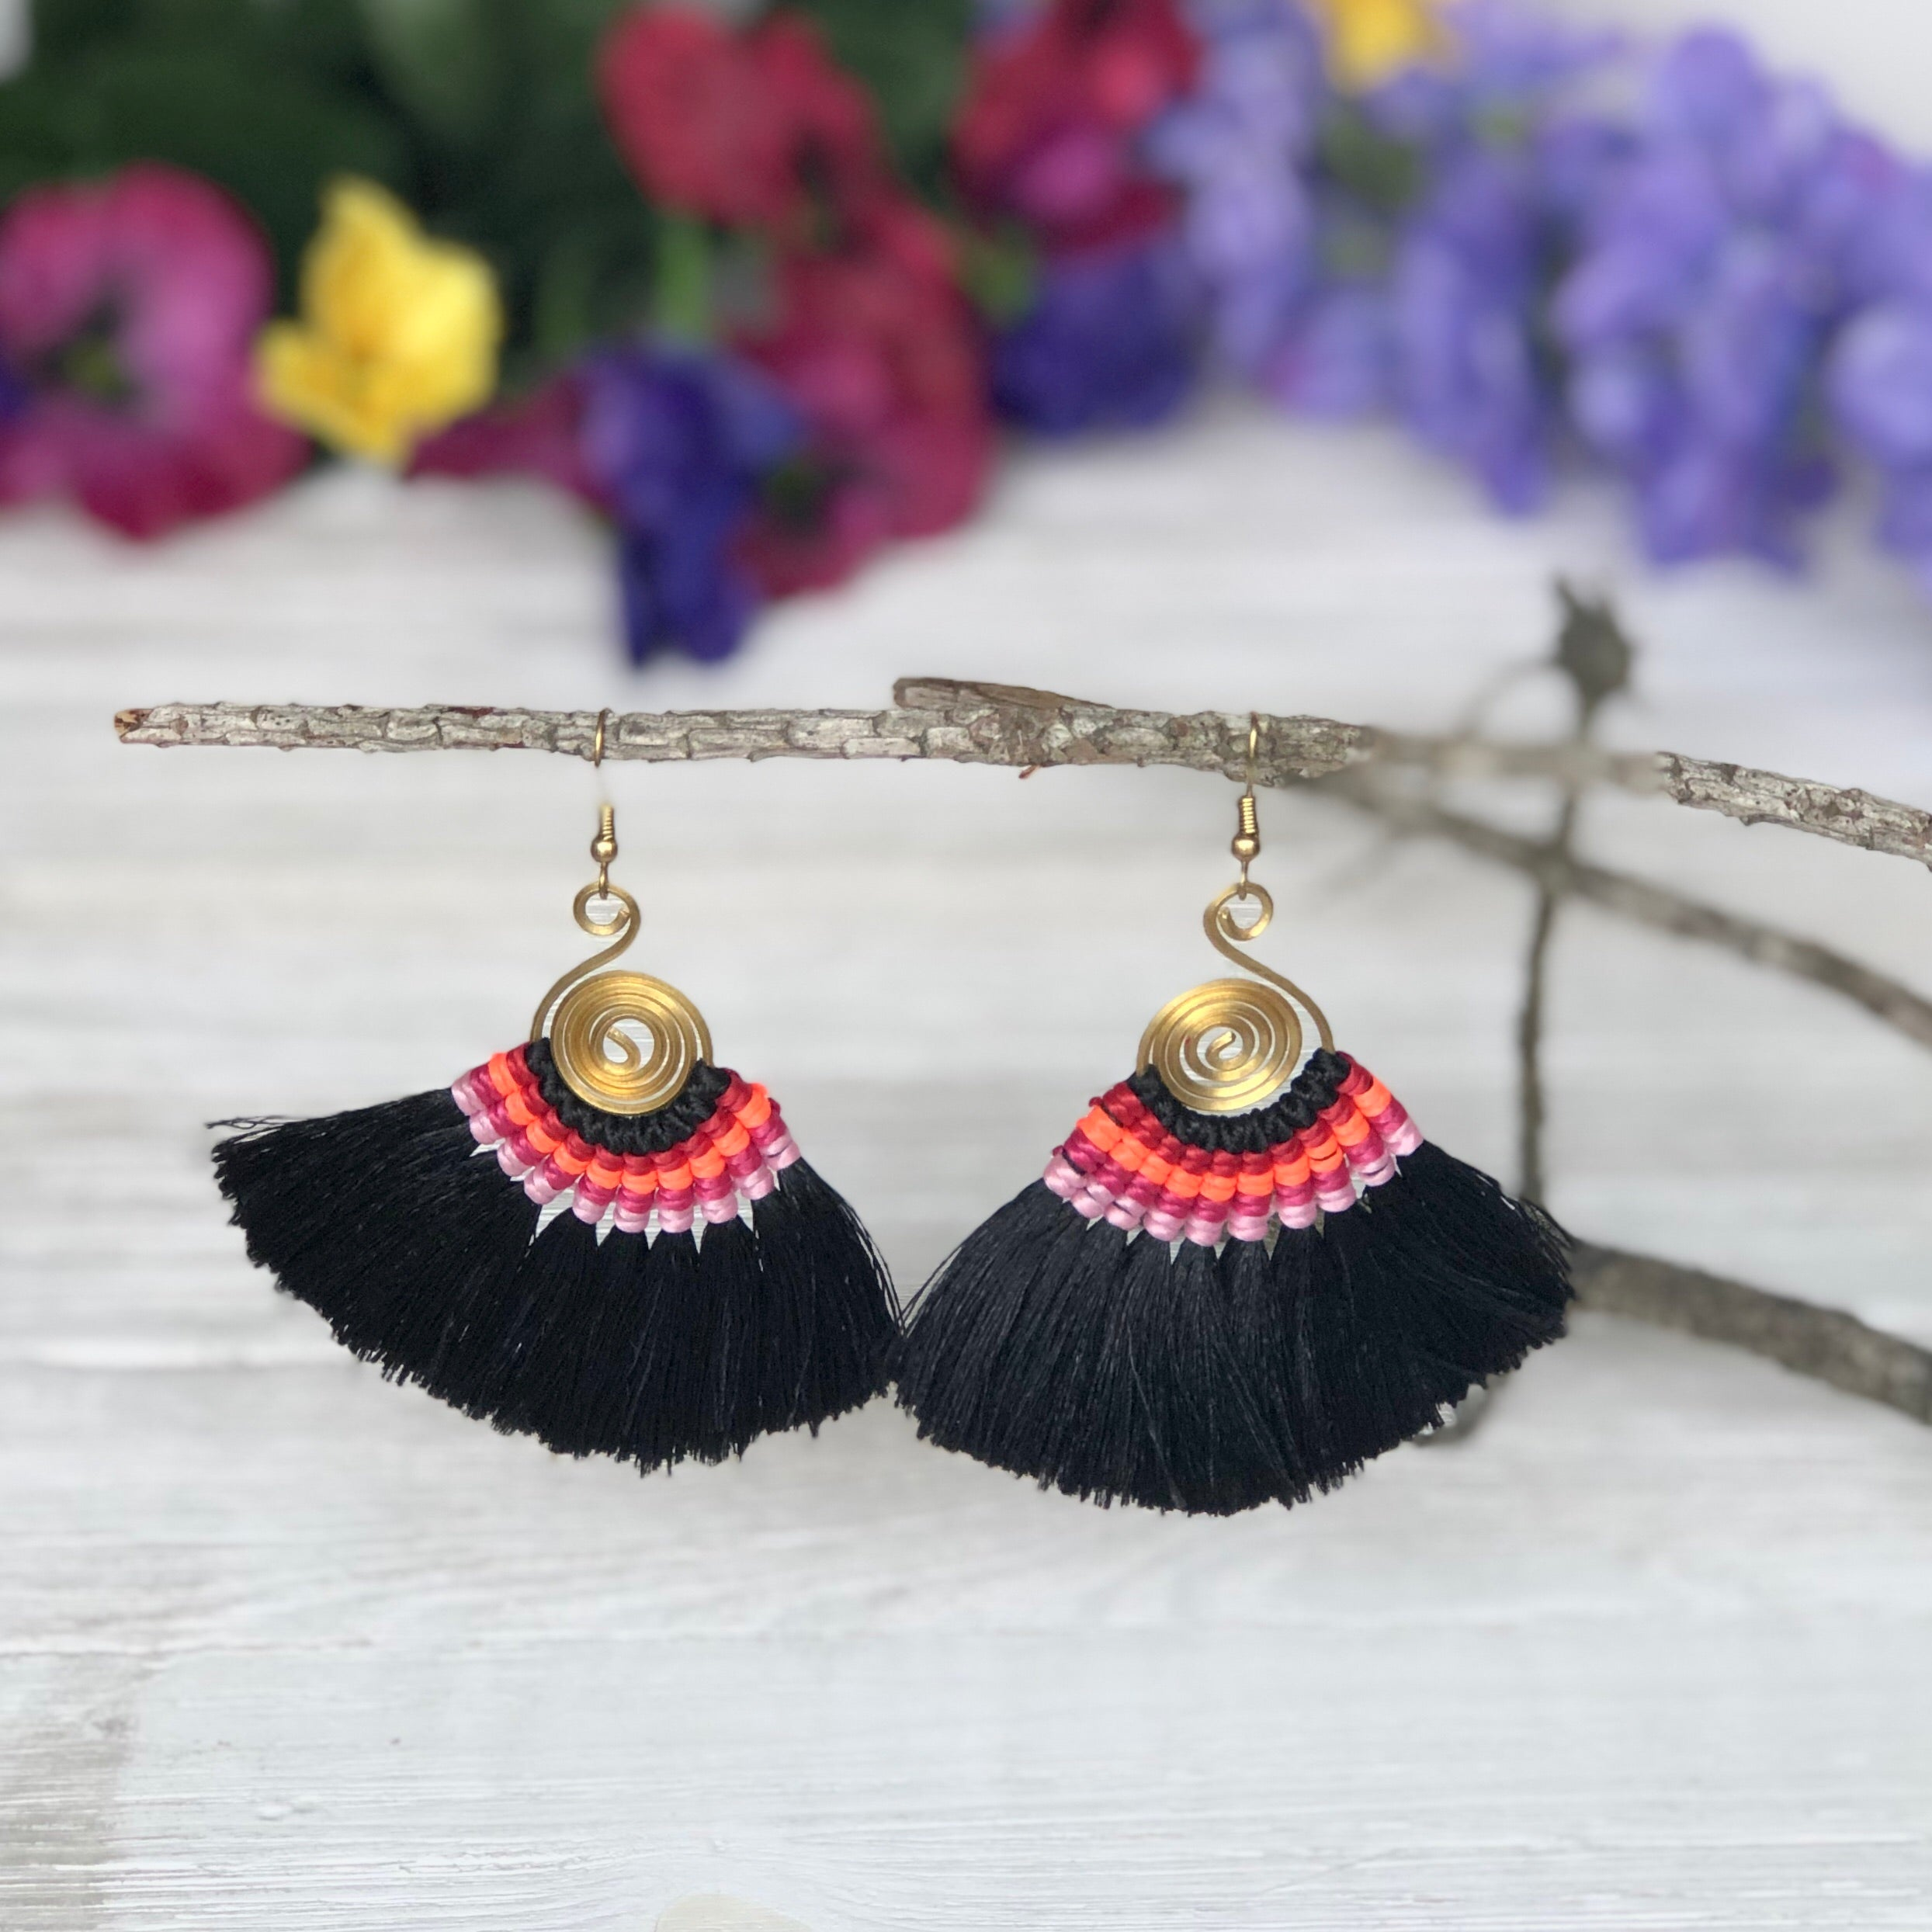 BLACK Tassel Earrings-Woven Silk Thread Fringe Earrings-Tribal-Boho